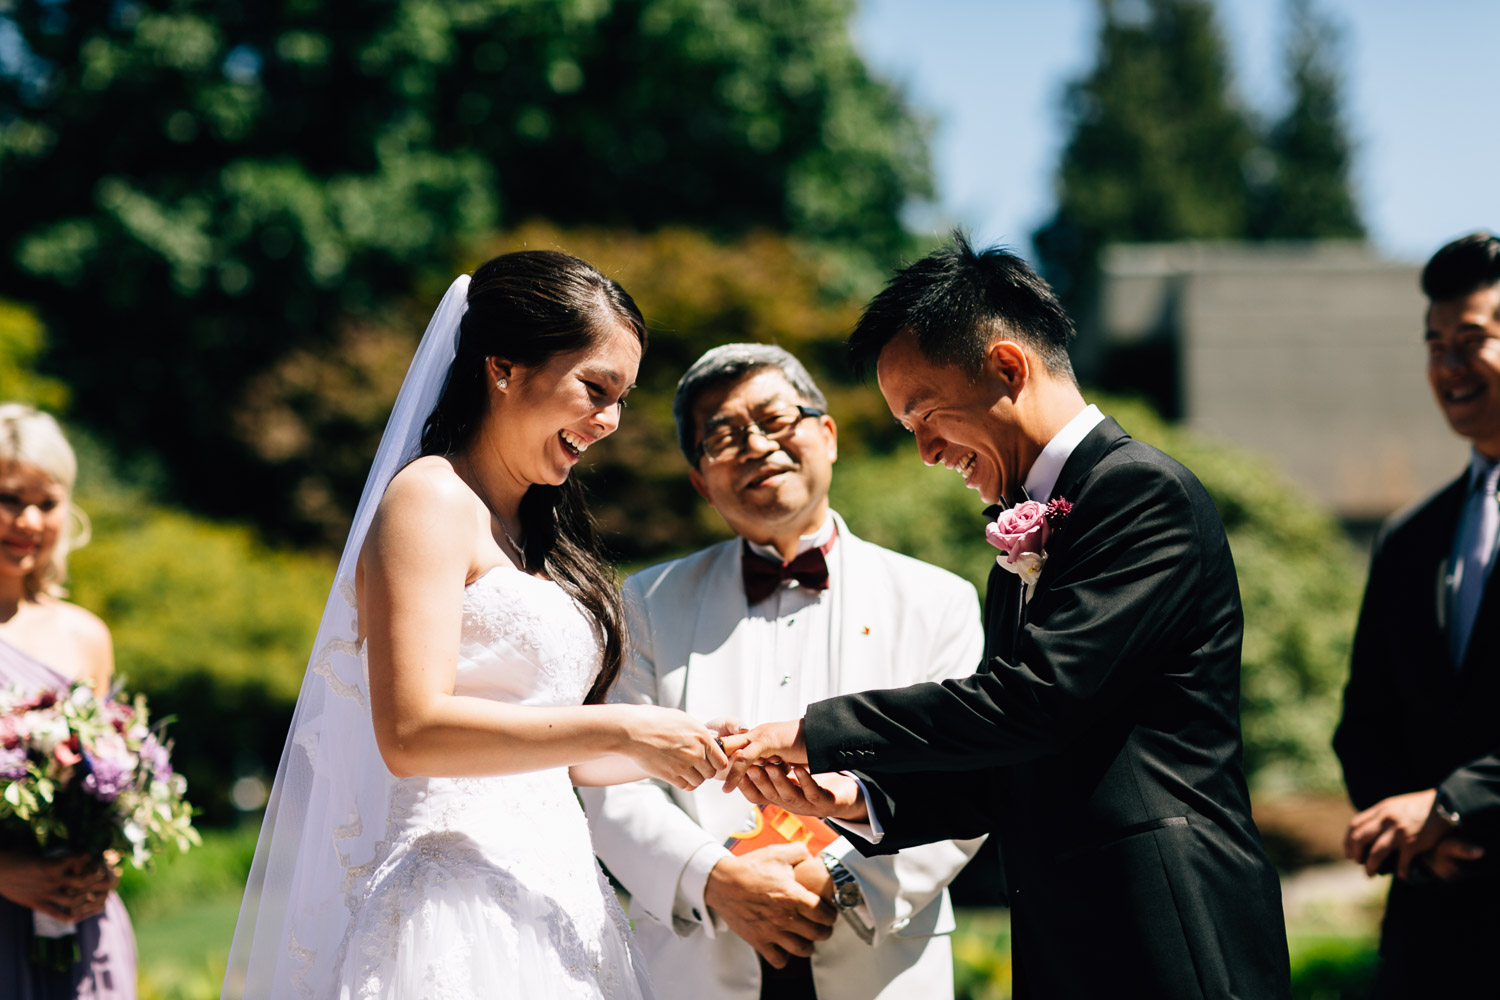 ubc sage bistro ring exchange wedding photography during summer